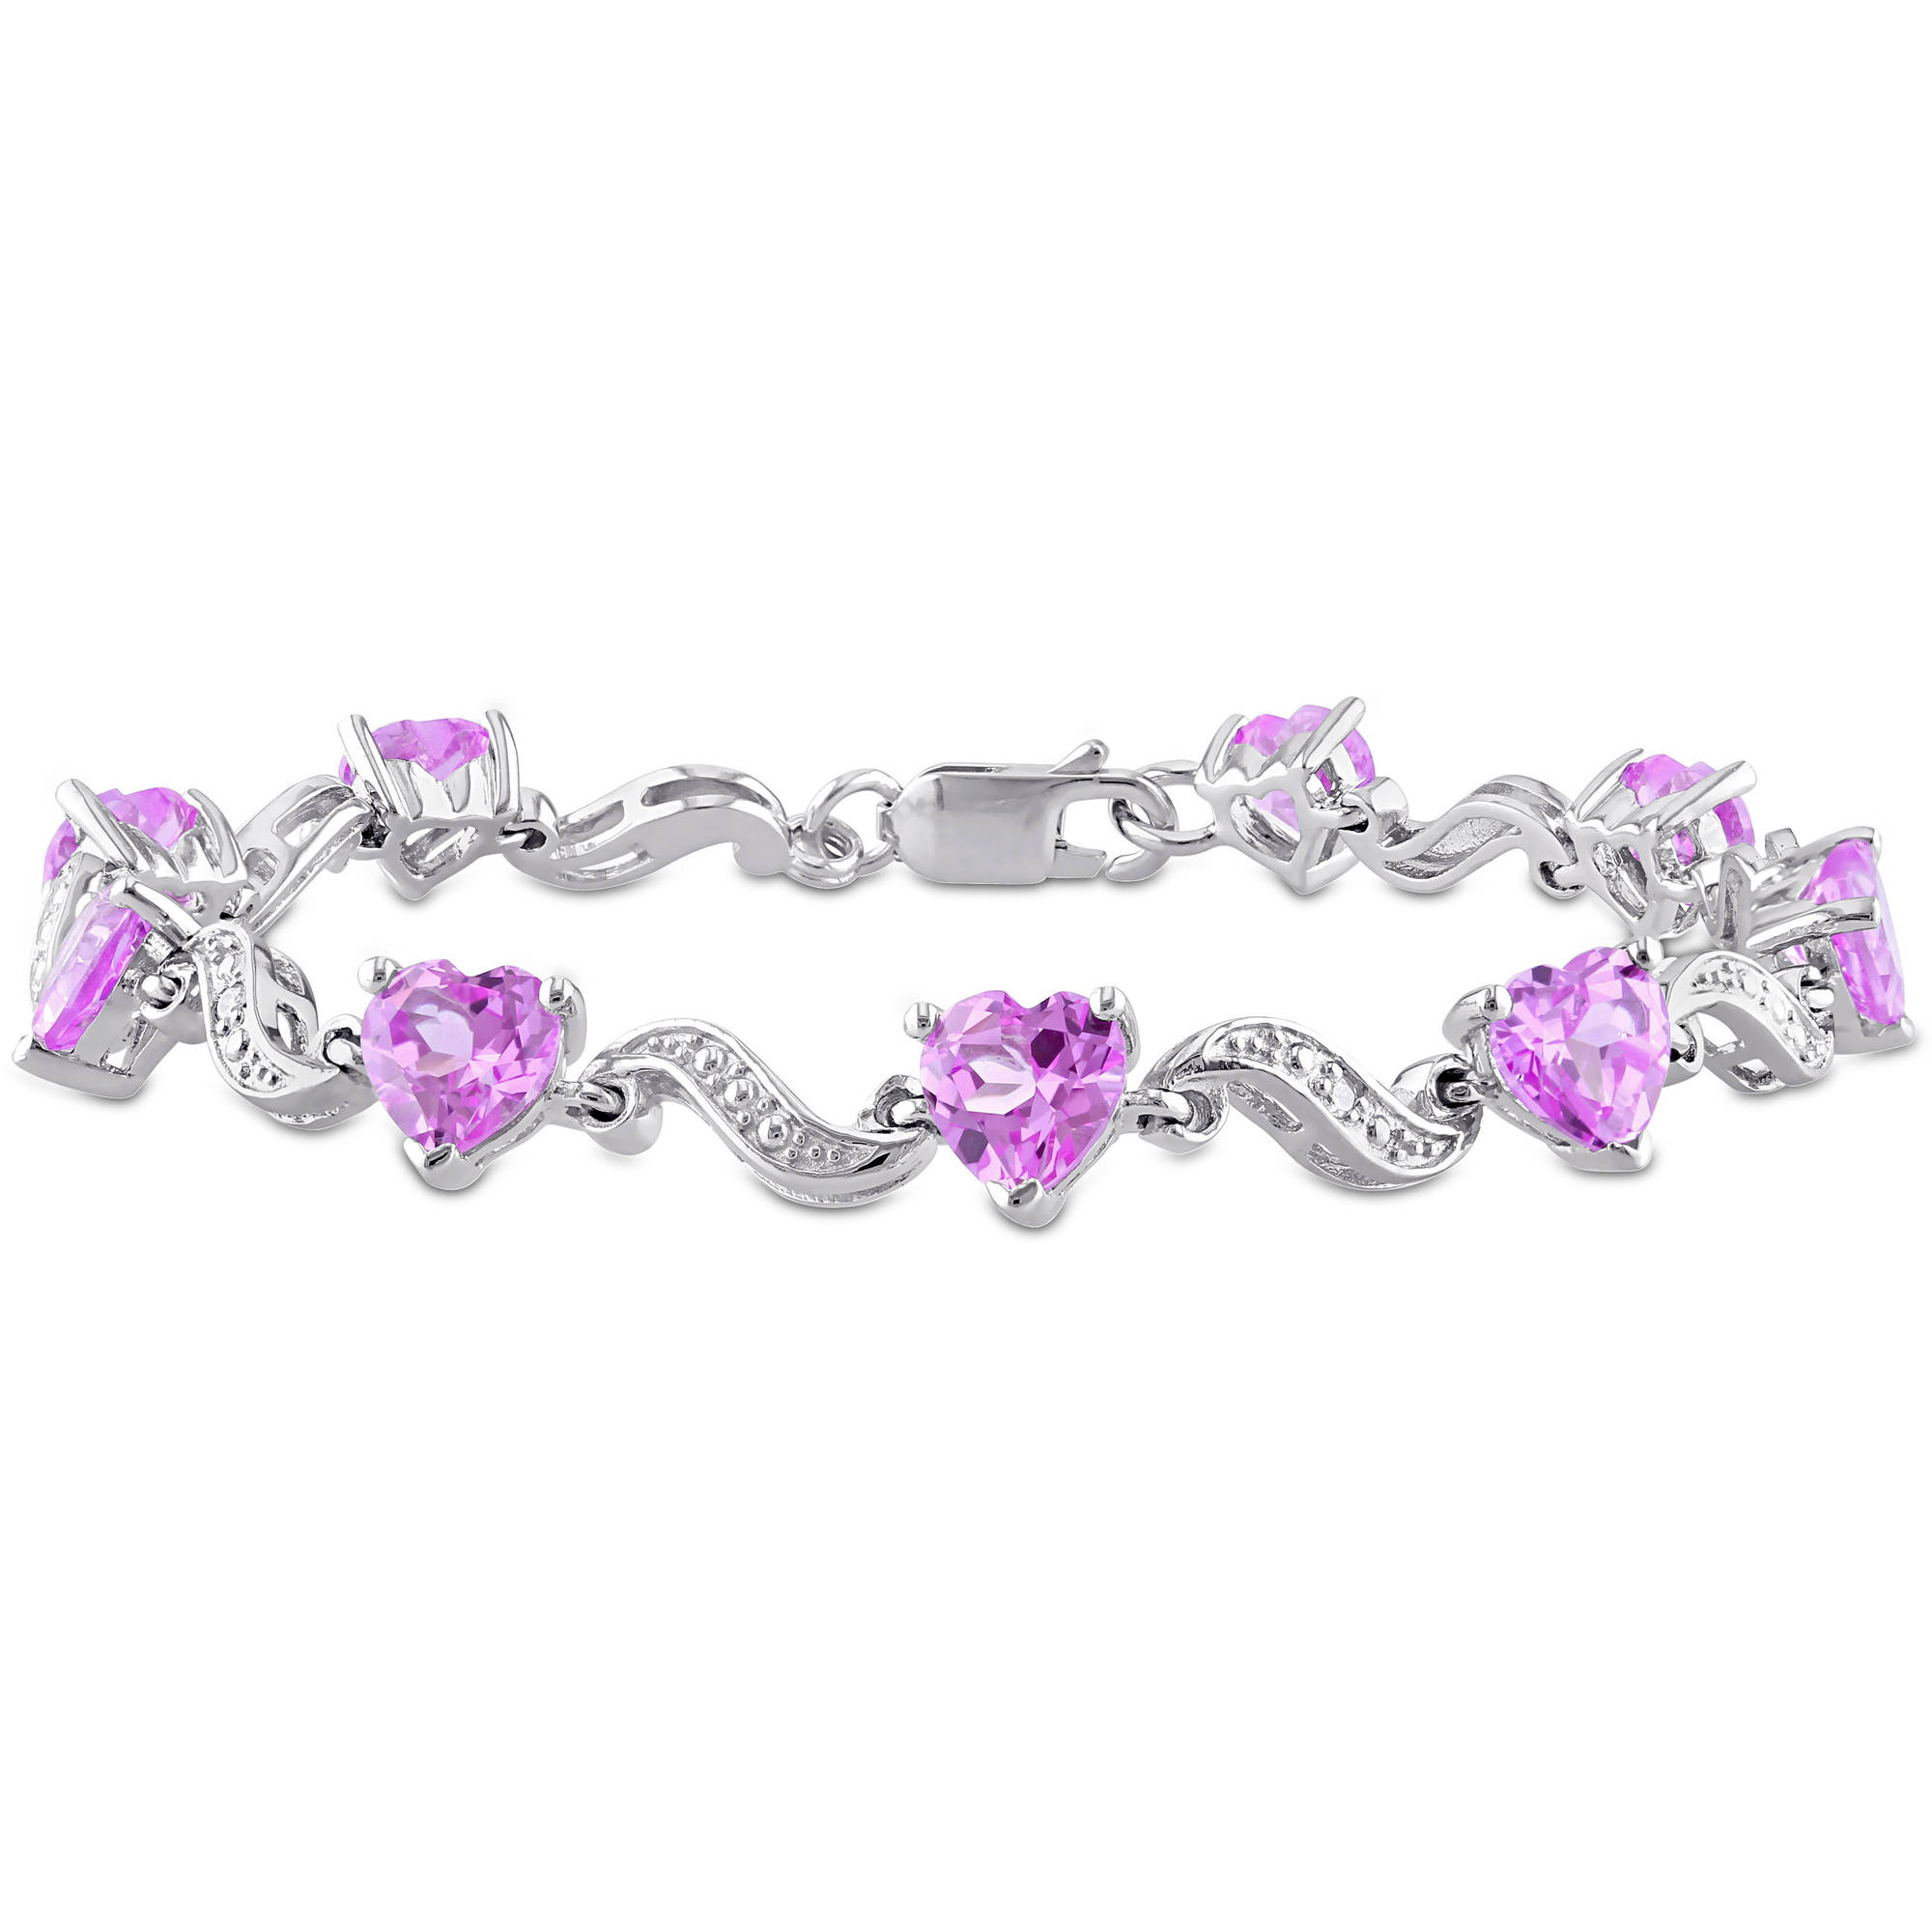 "8-4 5 Carat T.G.W. Created Pink Sapphire and Diamond-Accent Sterling Silver Heart Bracelet, 7"" by Delmar Manufacturing LLC"